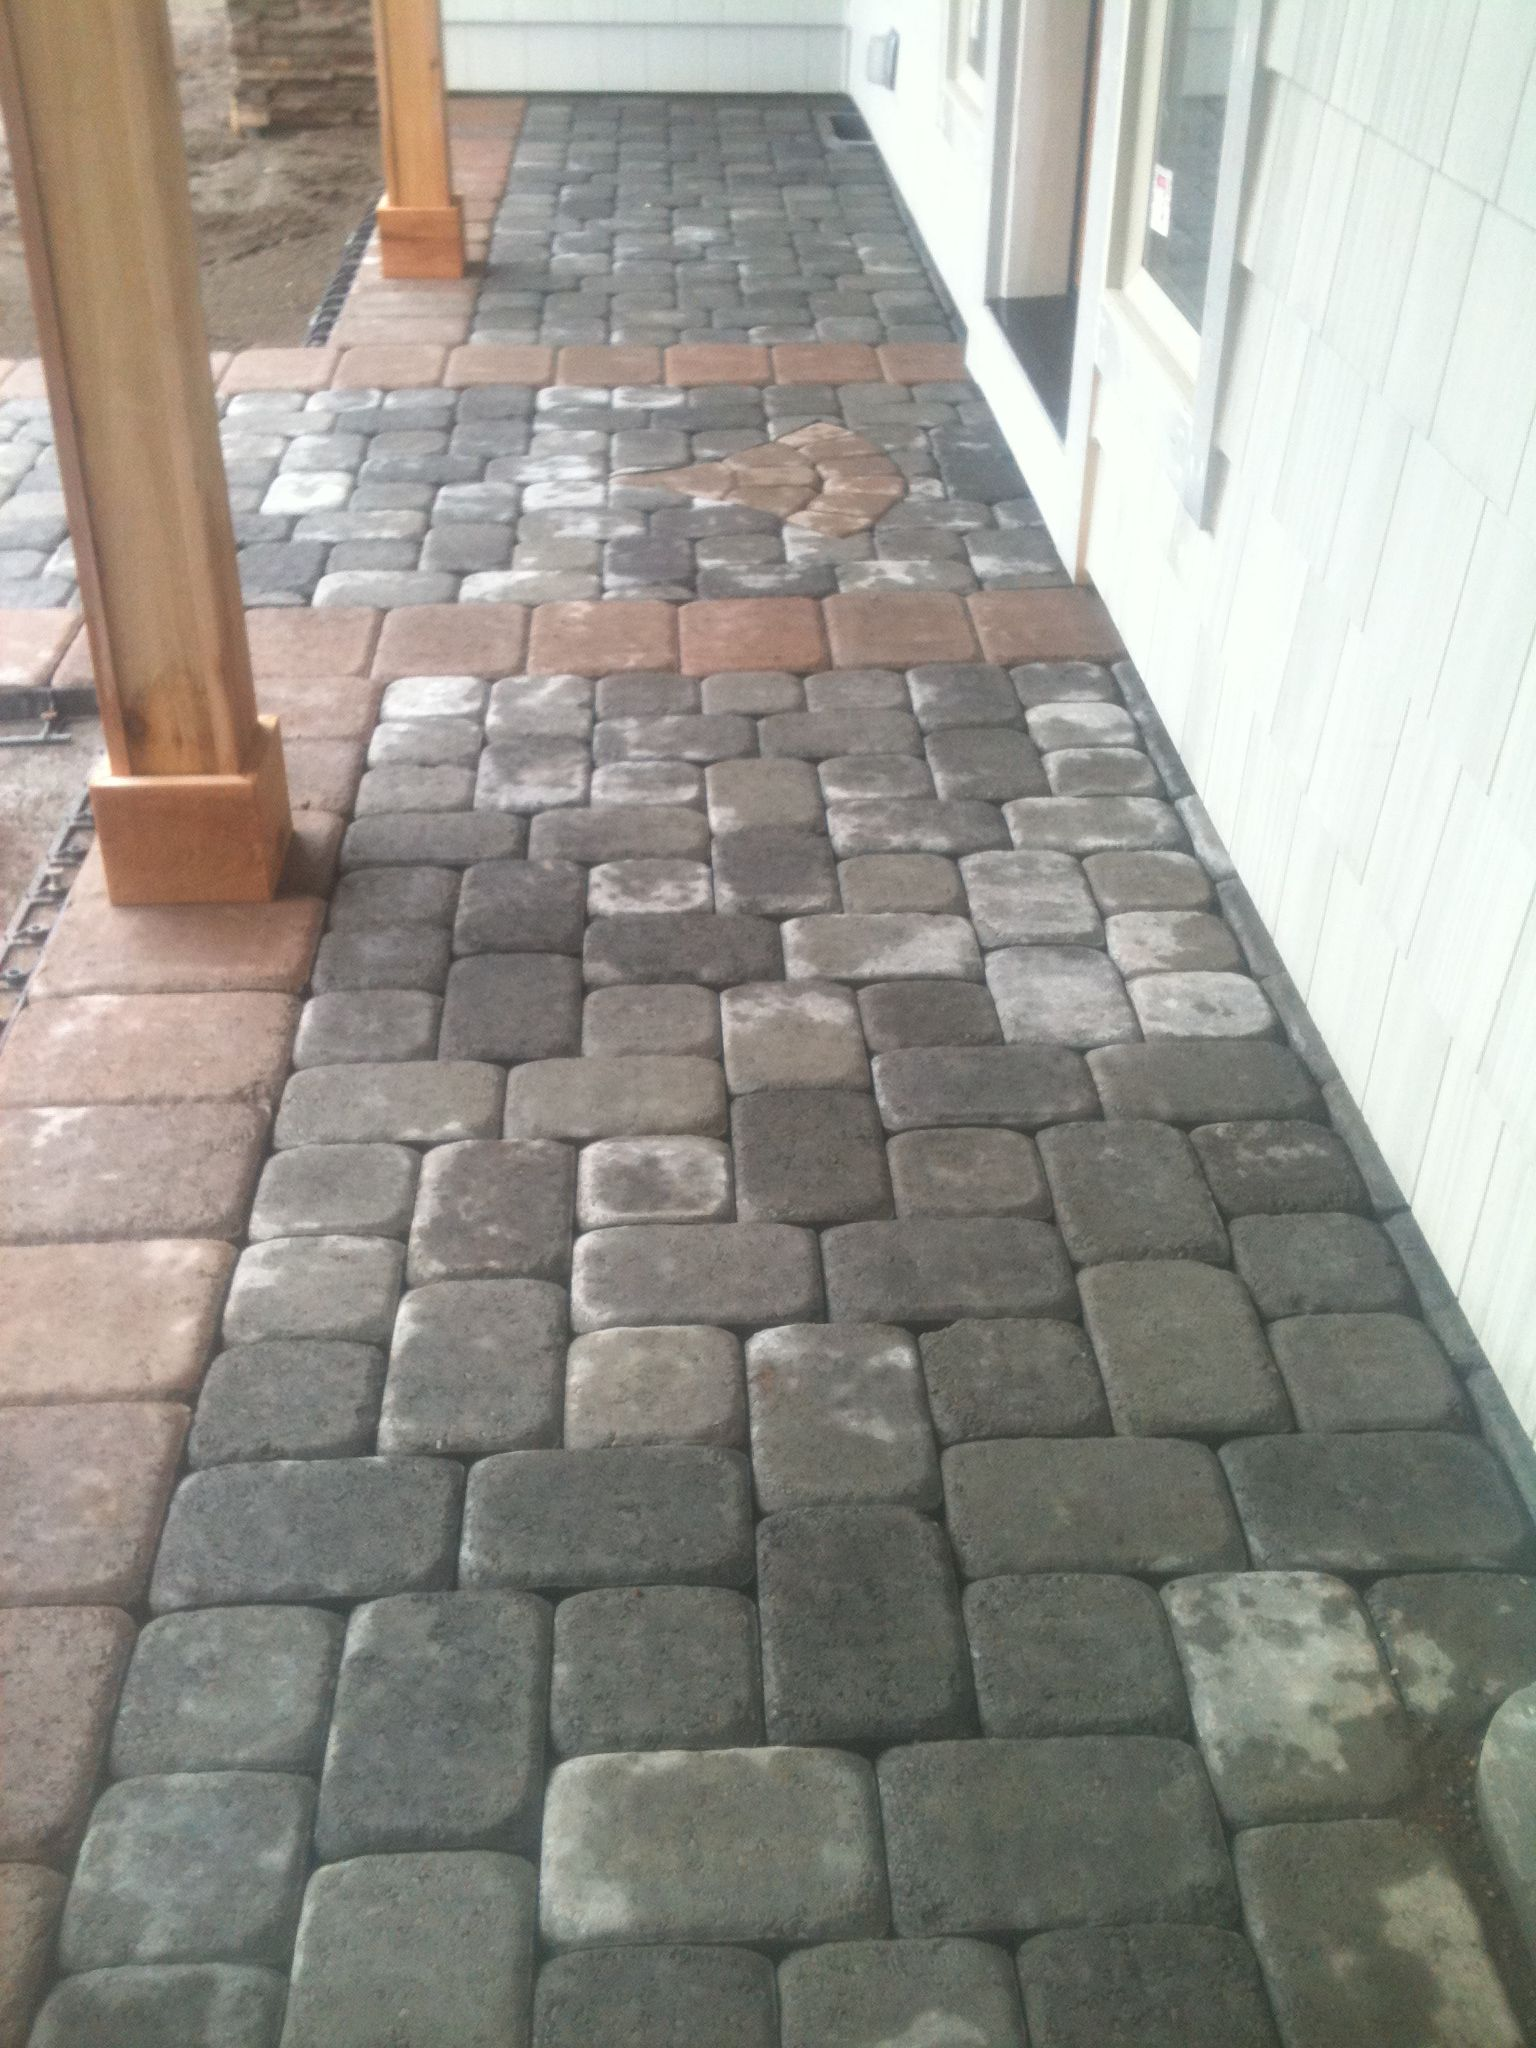 Exterior Of Mudroom Addition In Portland Oregon I Love The Porch: Nice Option For The Front Entry To A New Home. This Paver Walkway And Front Porch Are A Simple